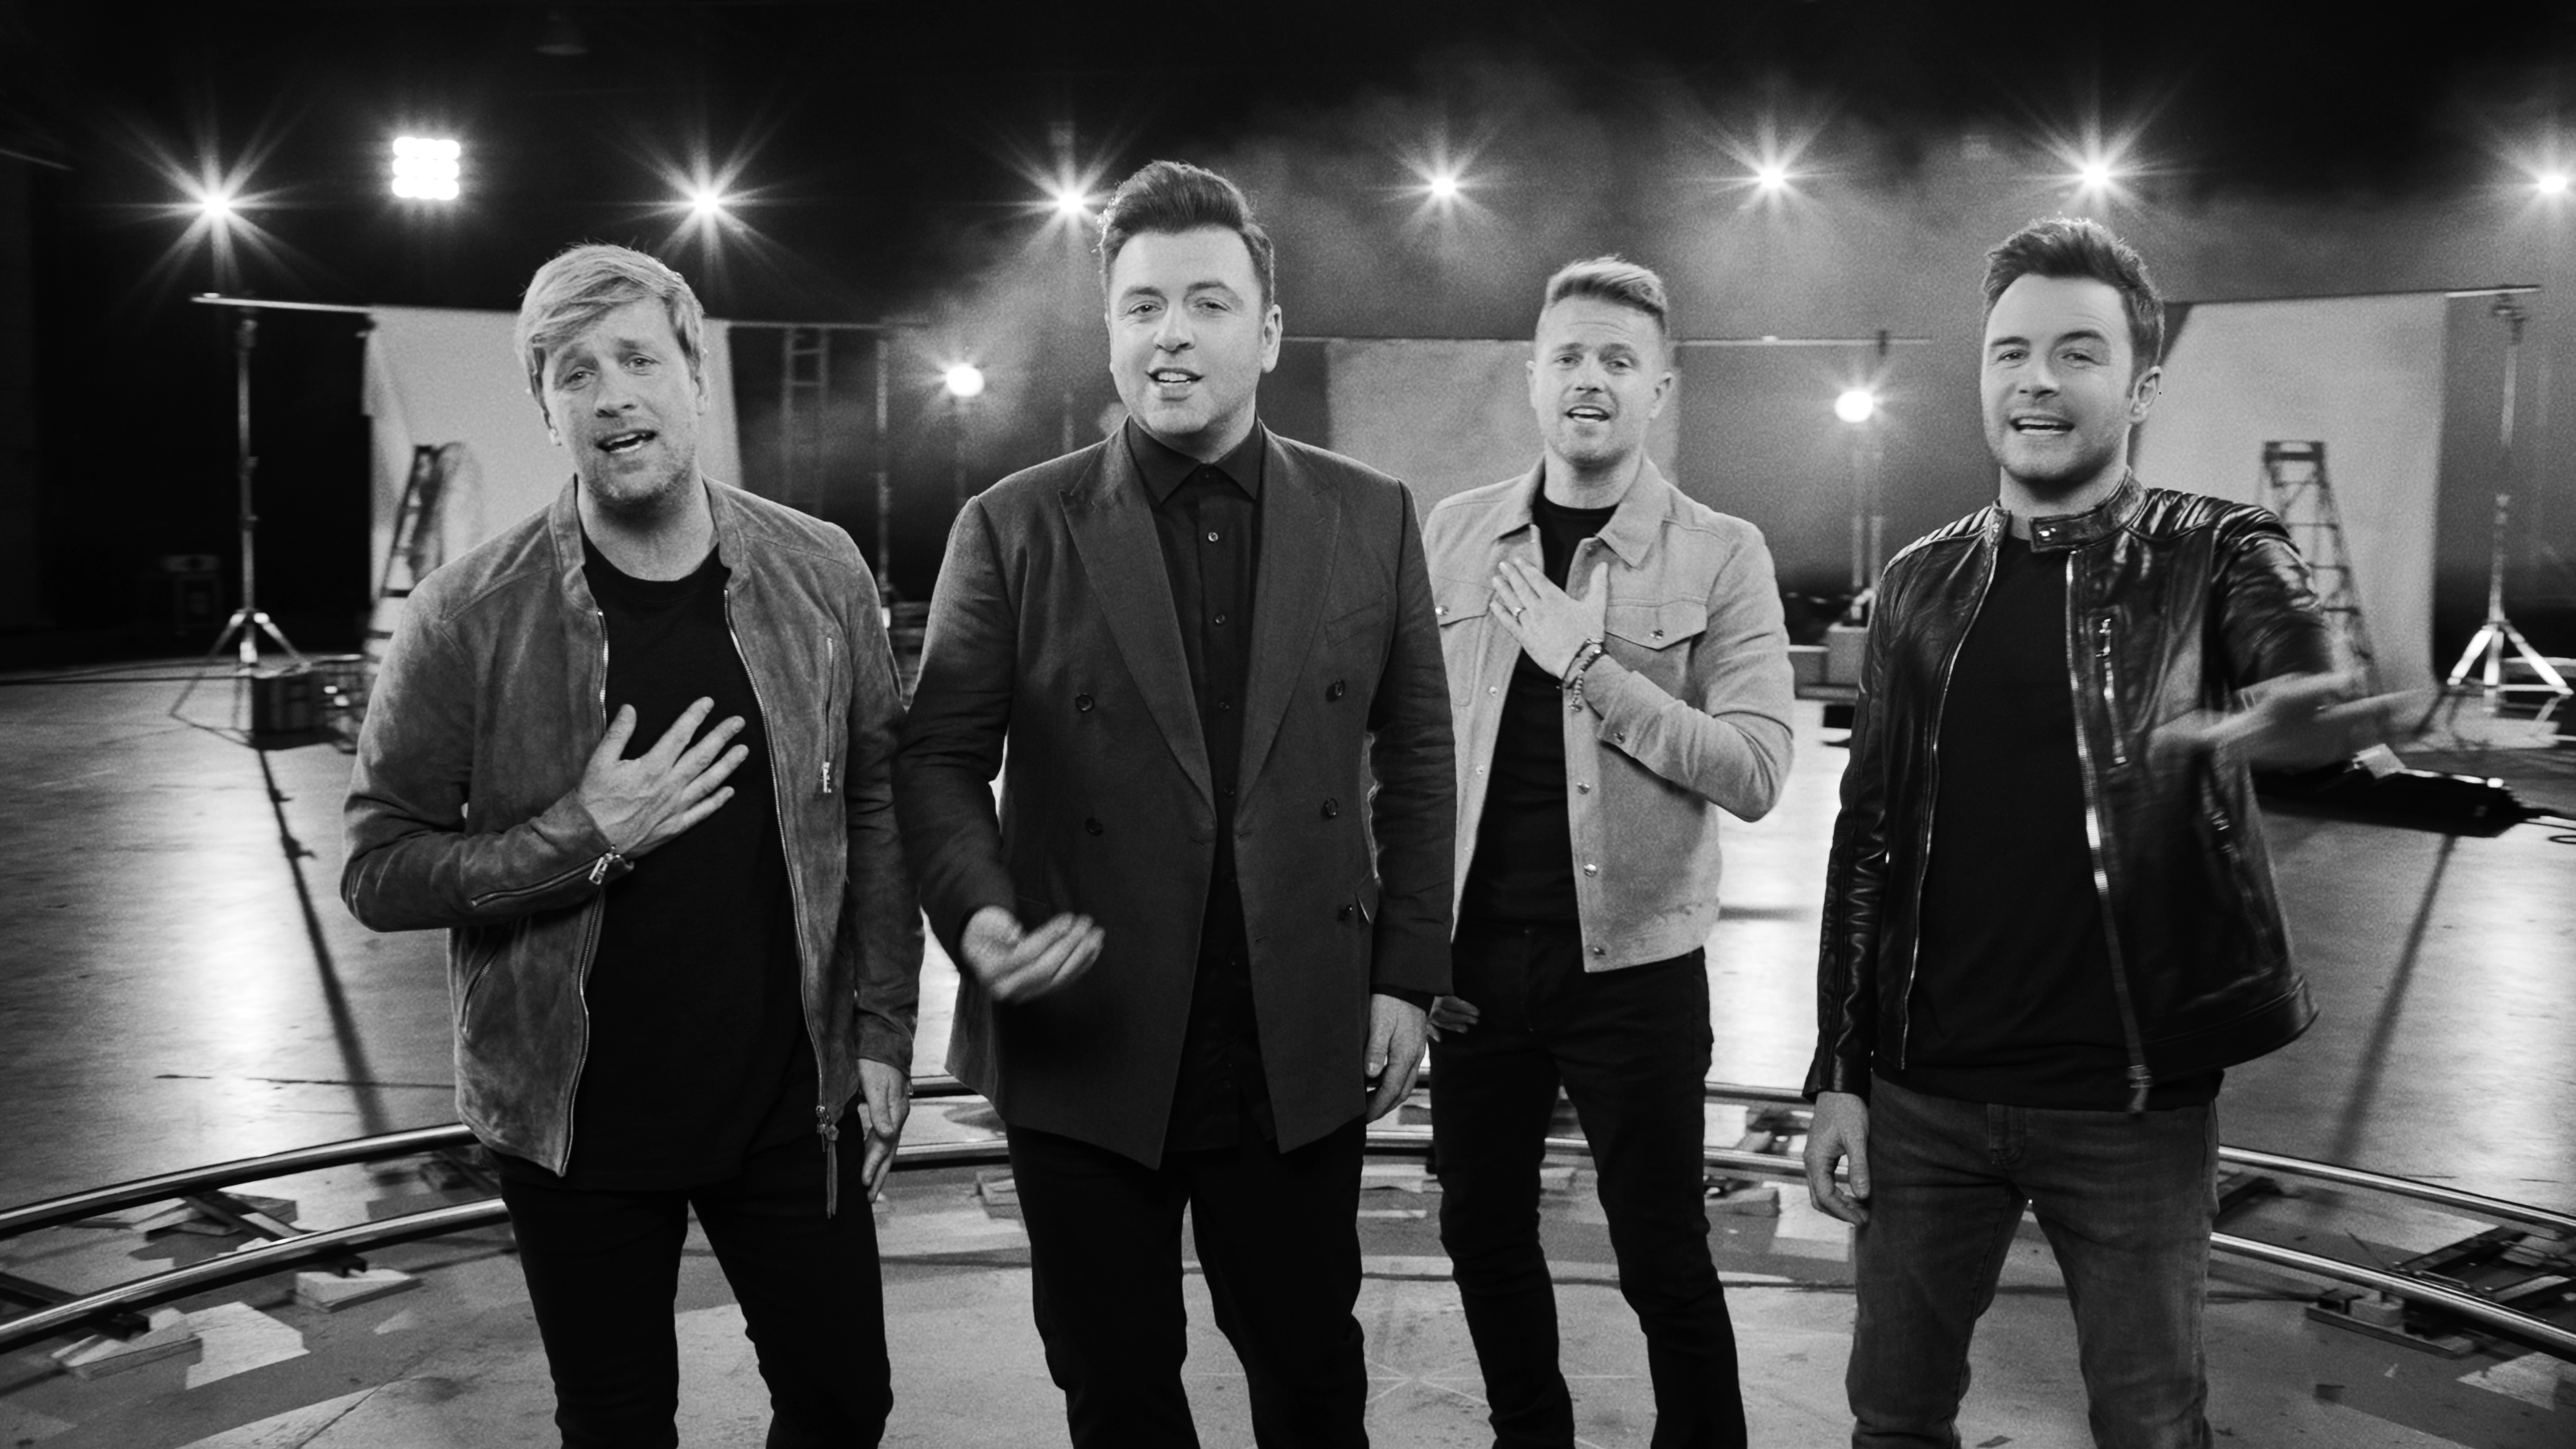 Westlife's children star in band's latest music video | FarmWeek